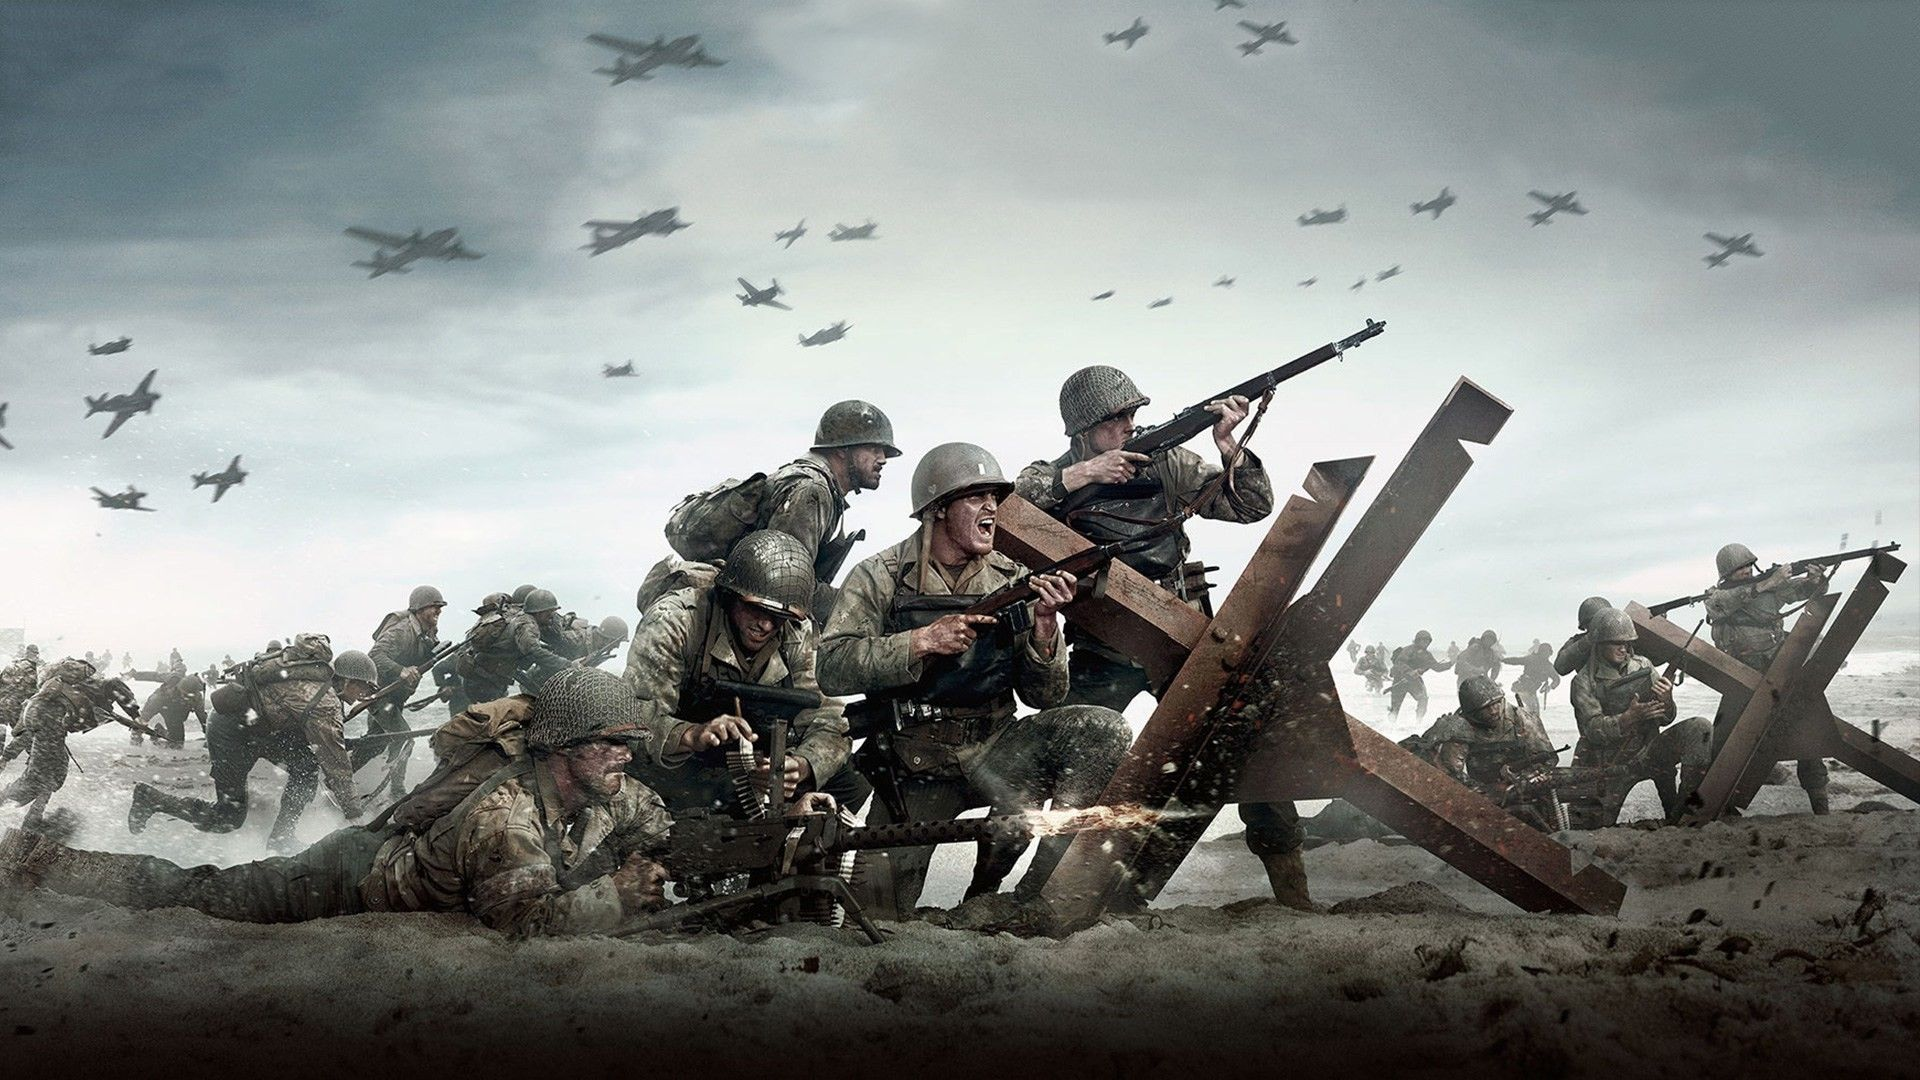 Ww2 Soldier Wallpapers Top Free Ww2 Soldier Backgrounds